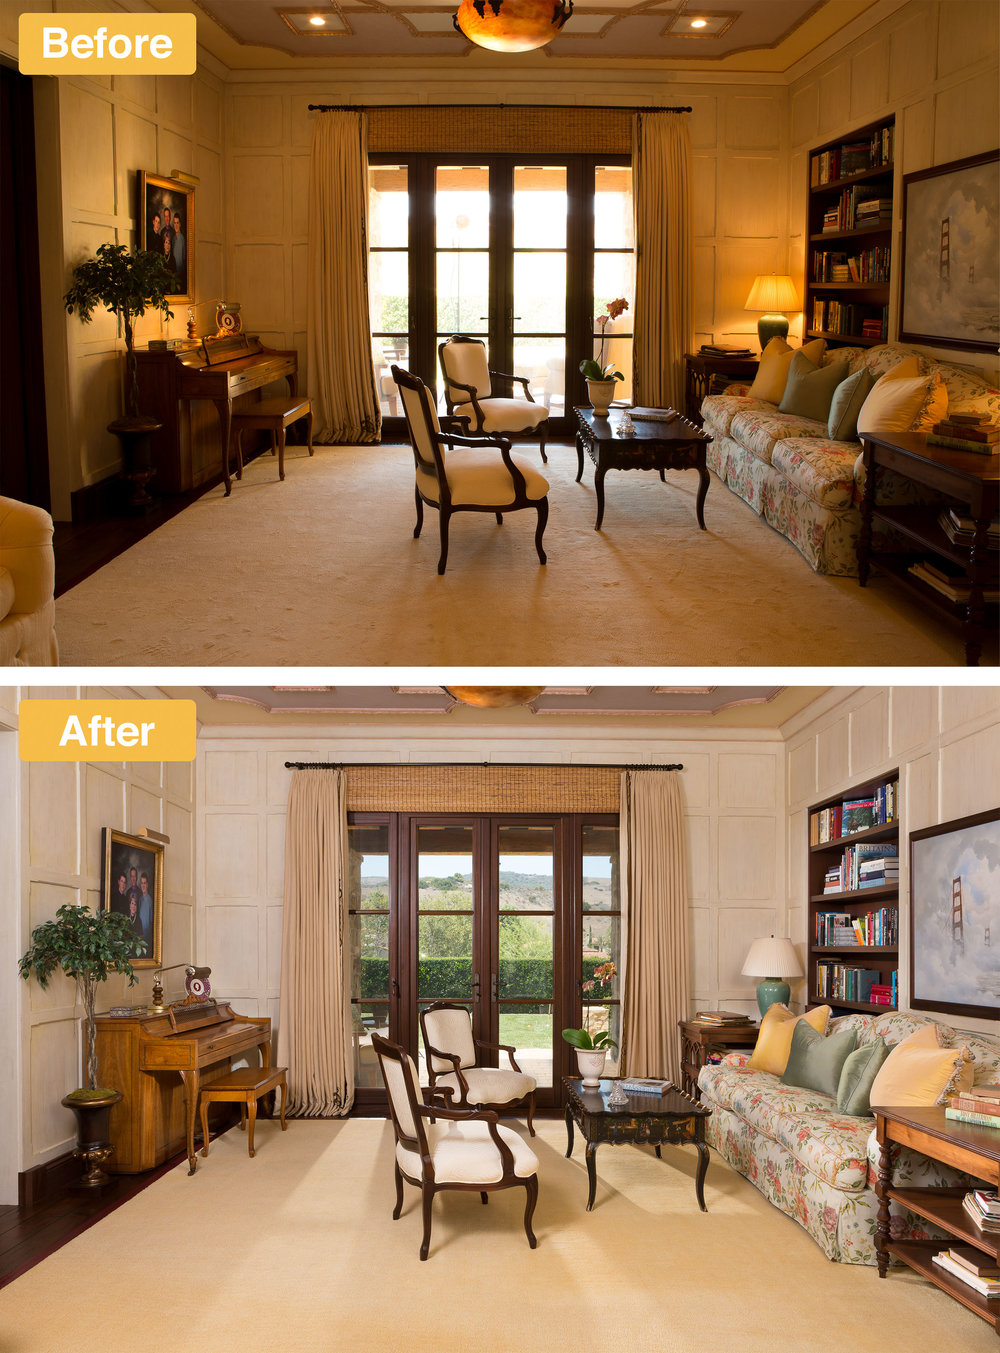 Before and after real estate photo